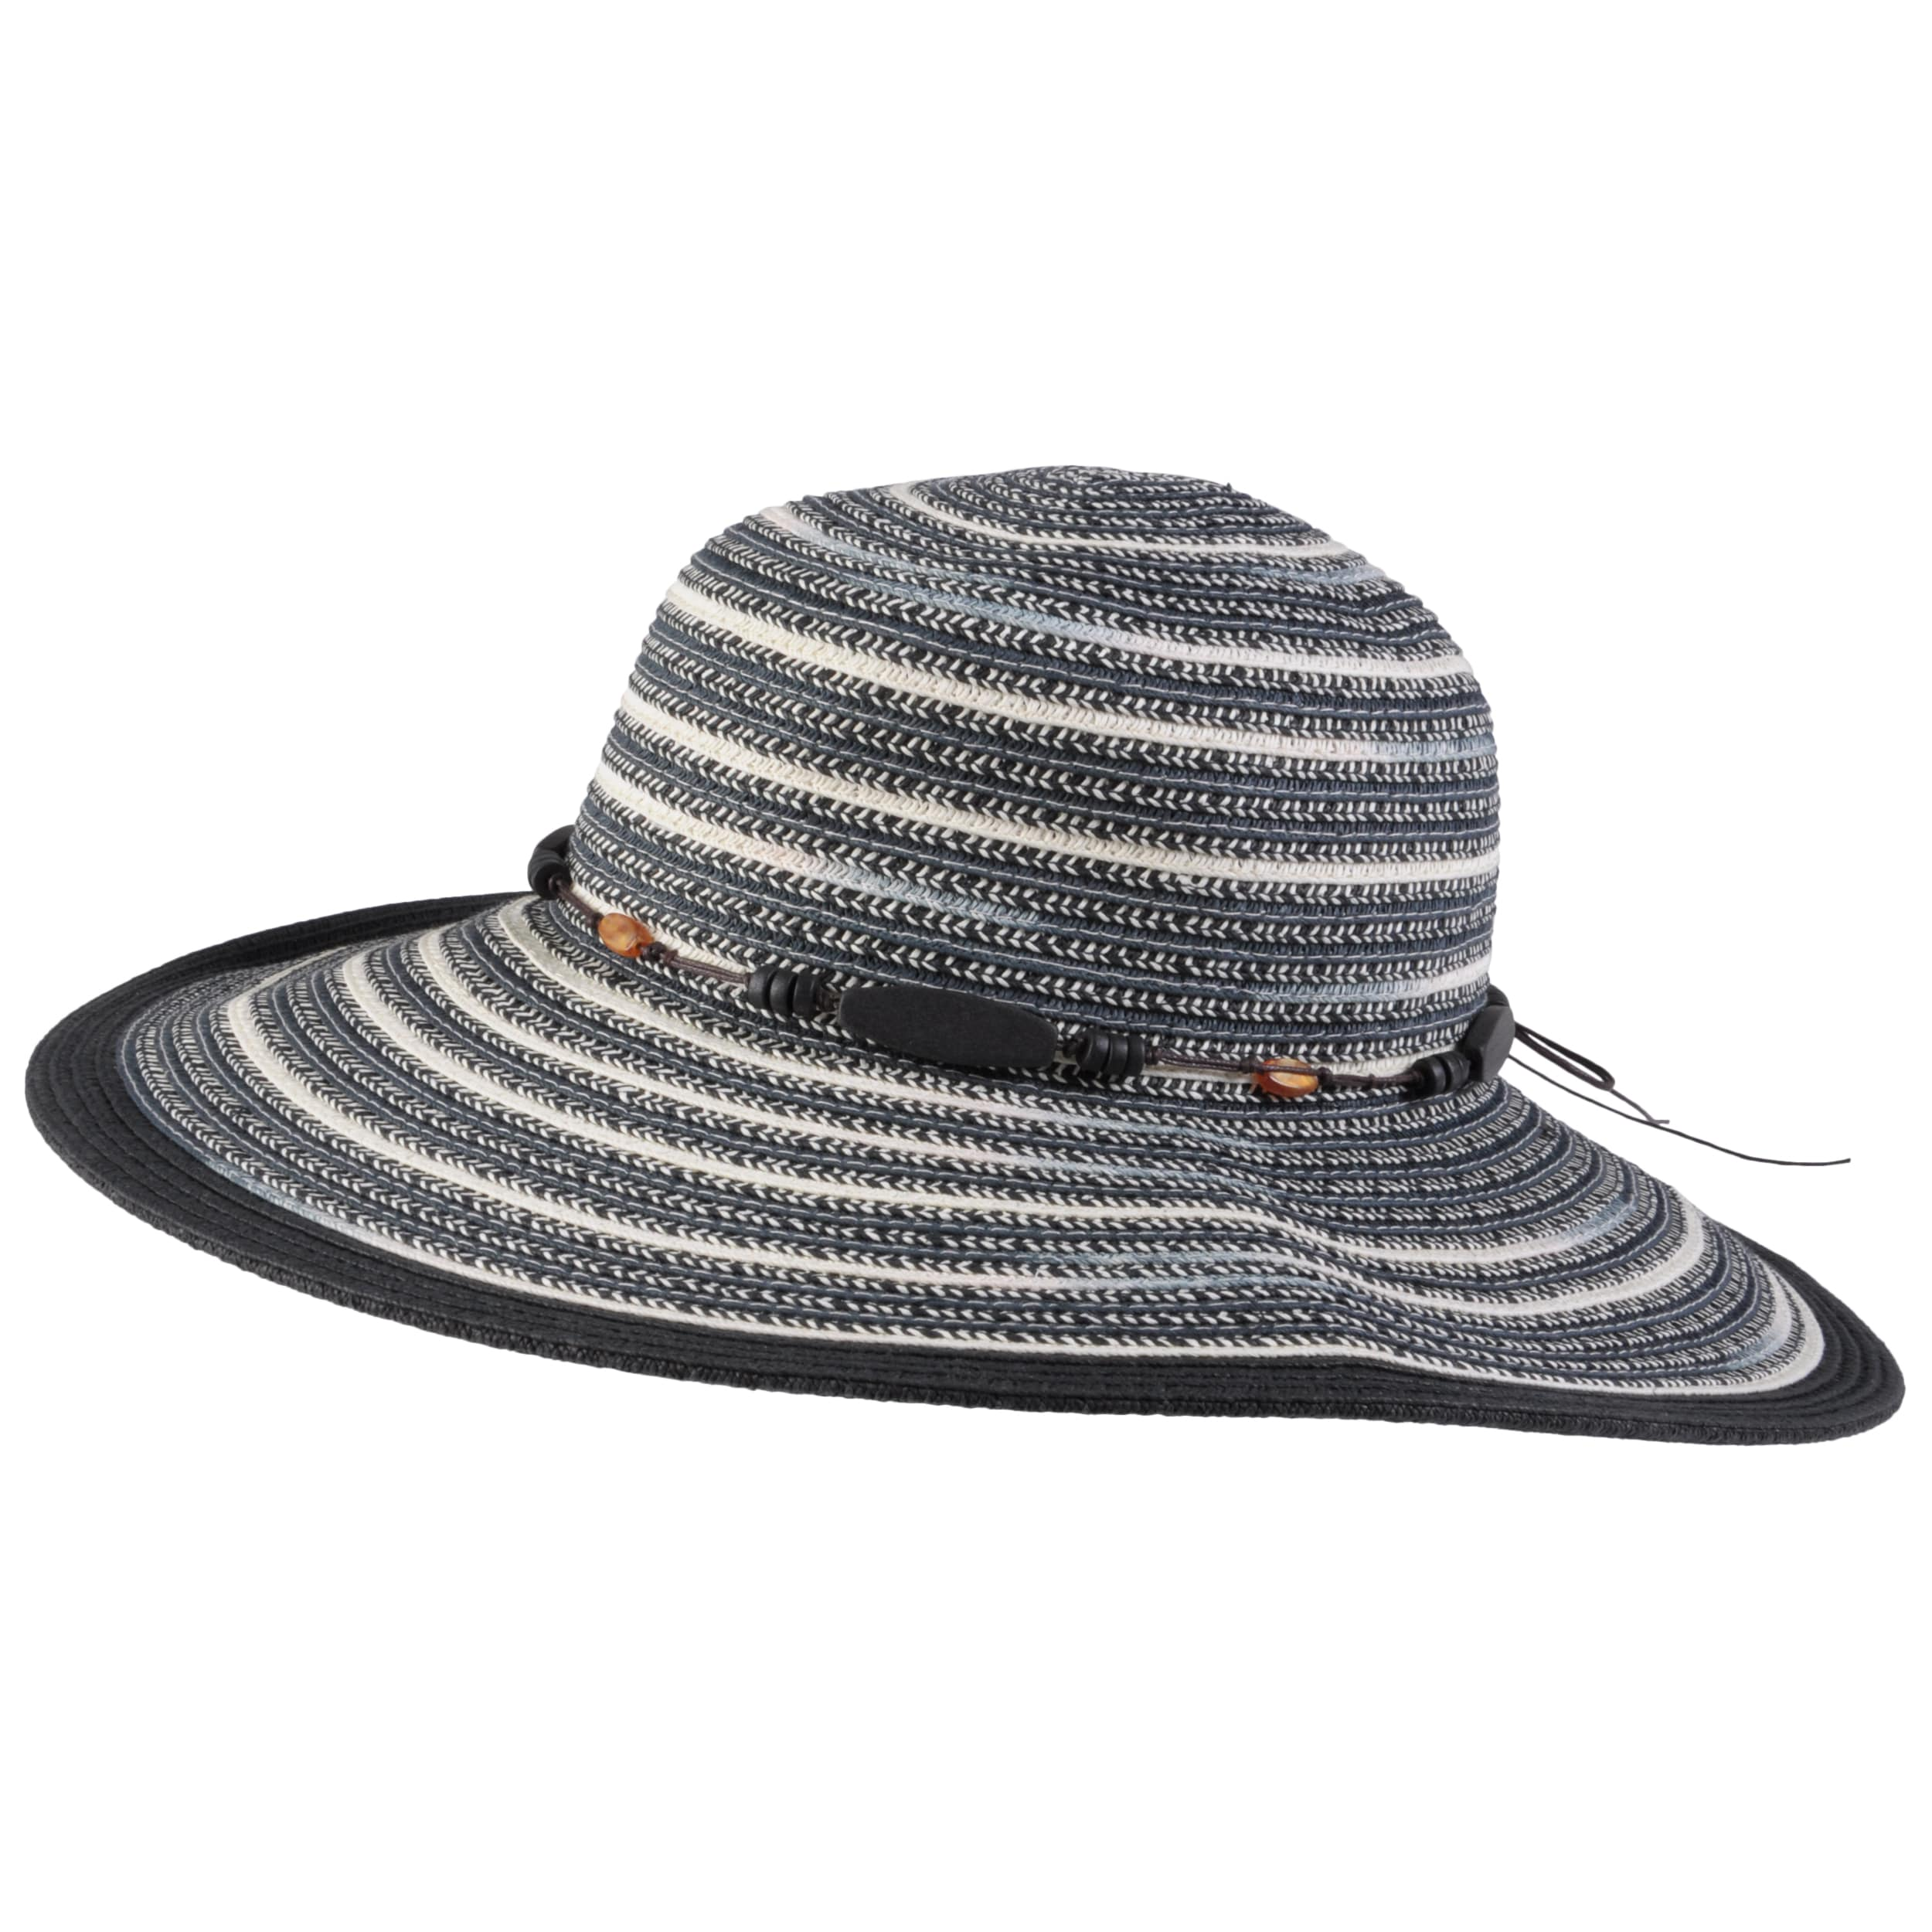 Hailey Jeans Co. Women's Bead Accent Paper Braid Sunhat